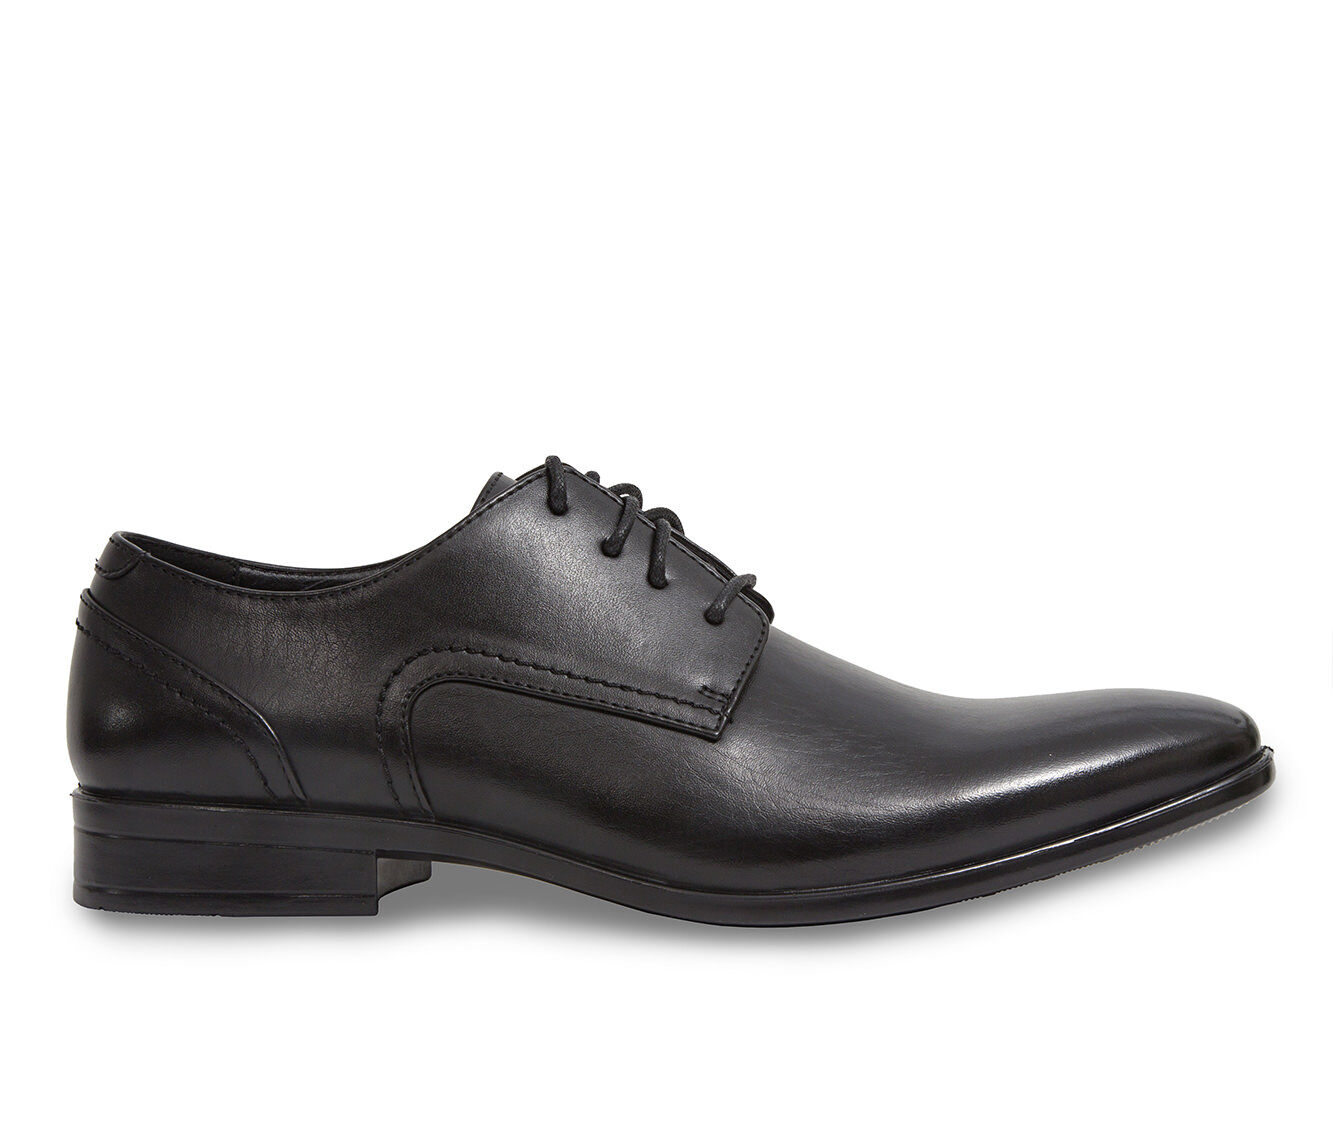 Men's Deer Stags Shipley Oxfords Black